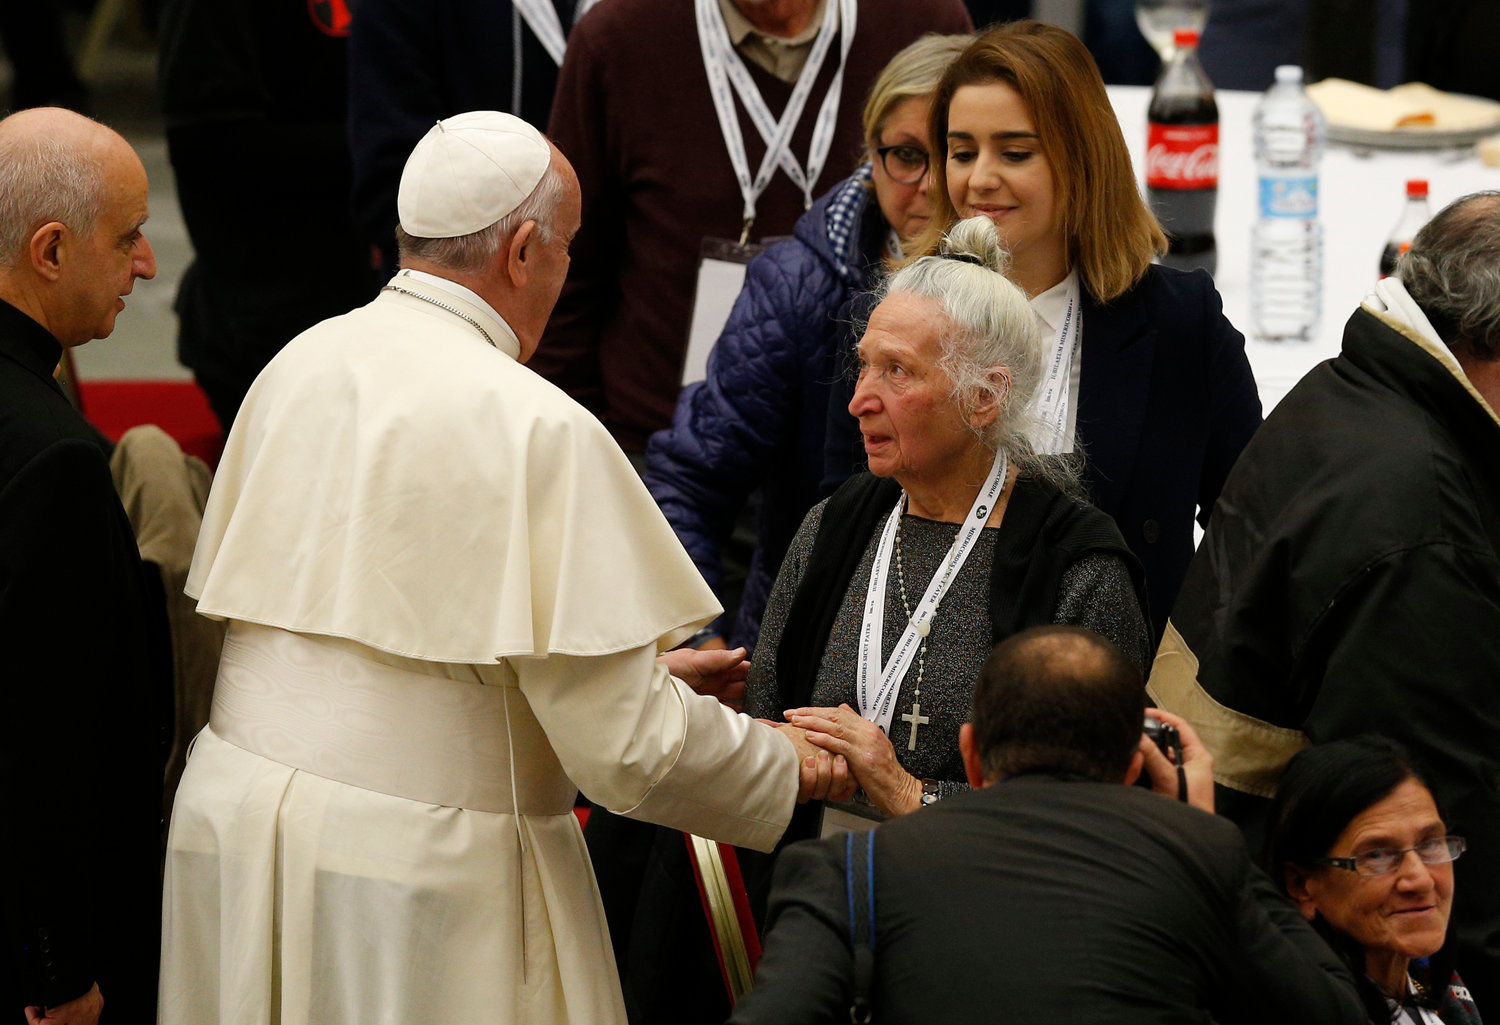 Pope Francis greets a woman as he arrives to eat lunch with the poor in the Paul VI hall as he marks World Day of the Poor at the Vatican Nov. 17, 2019.